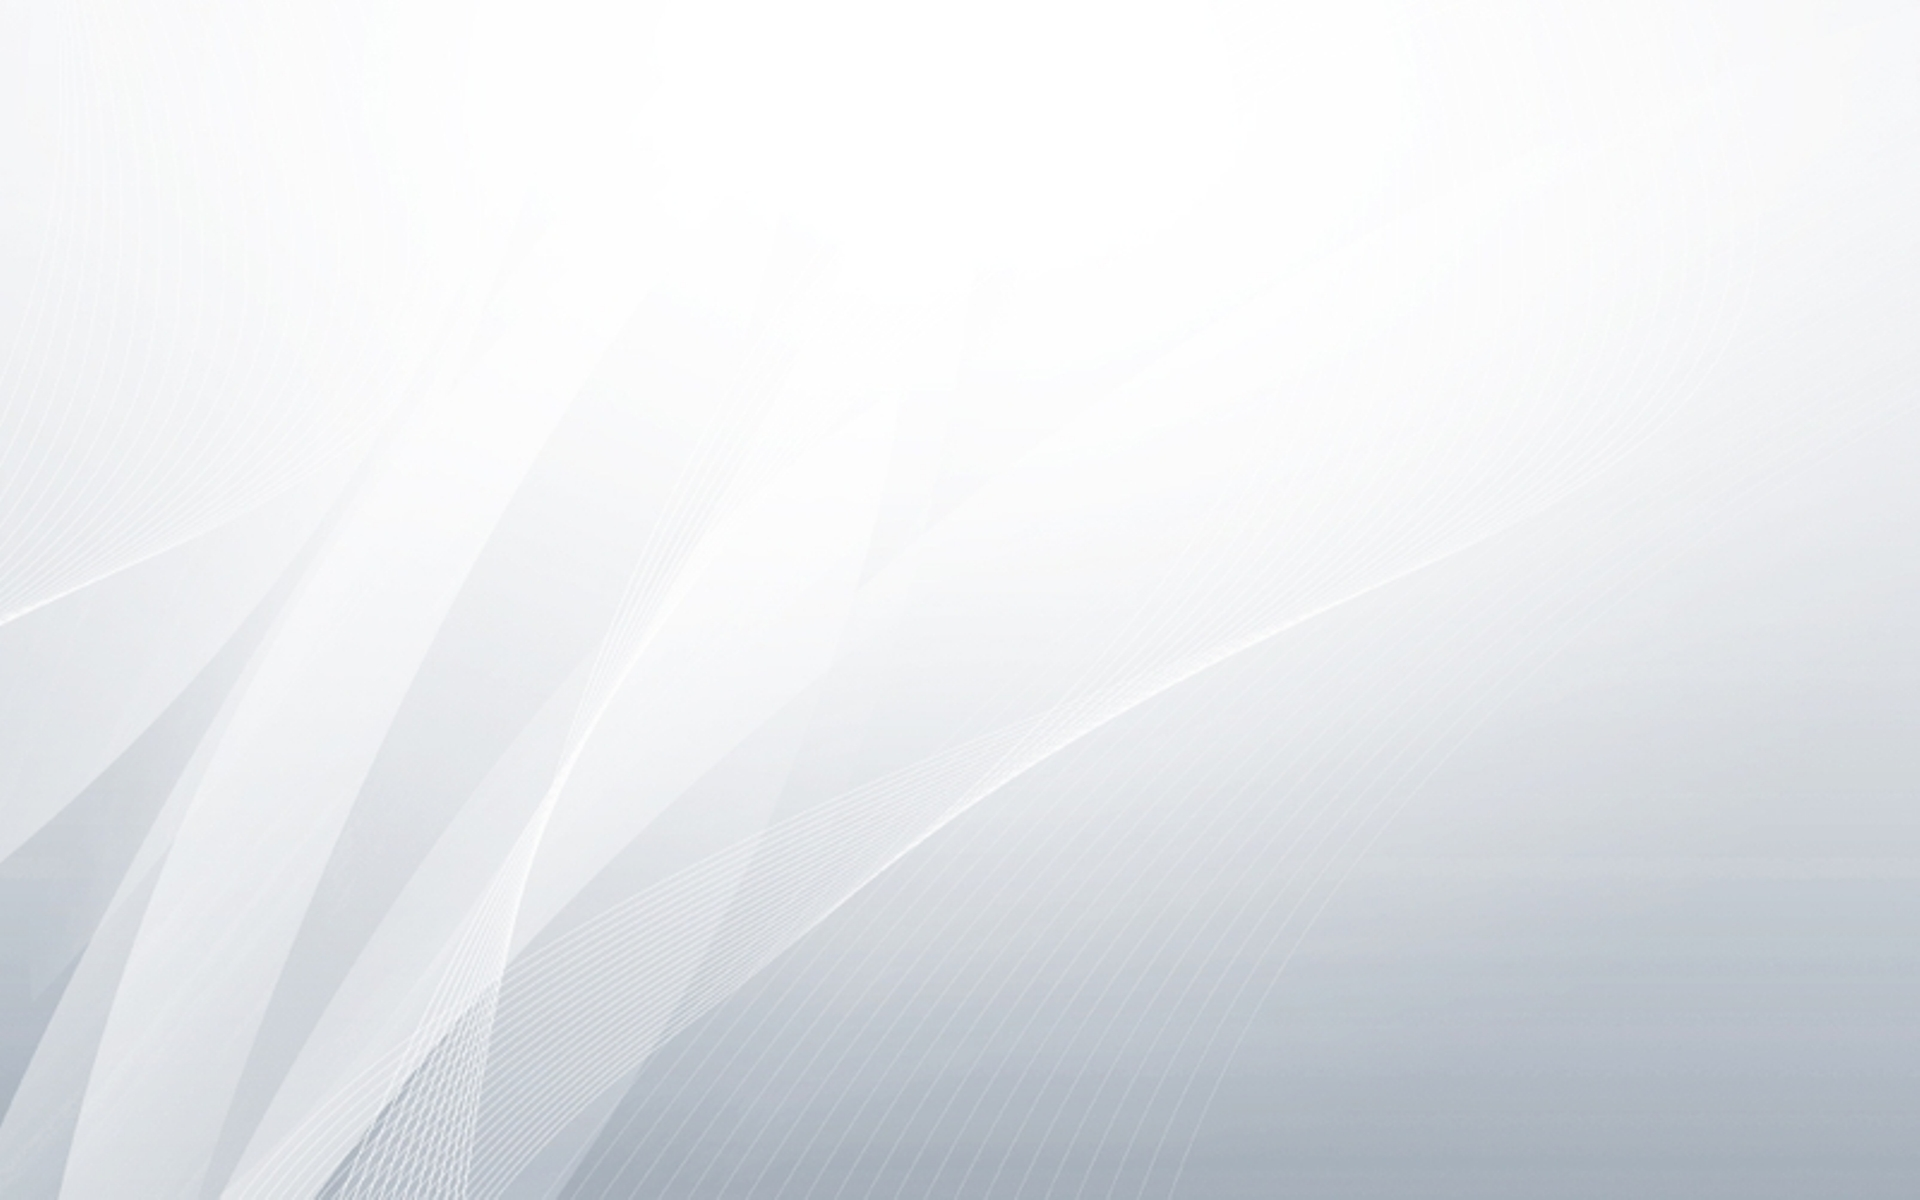 White abstract wallpaper 1920x1200 74363 for Wallpaper 3d white